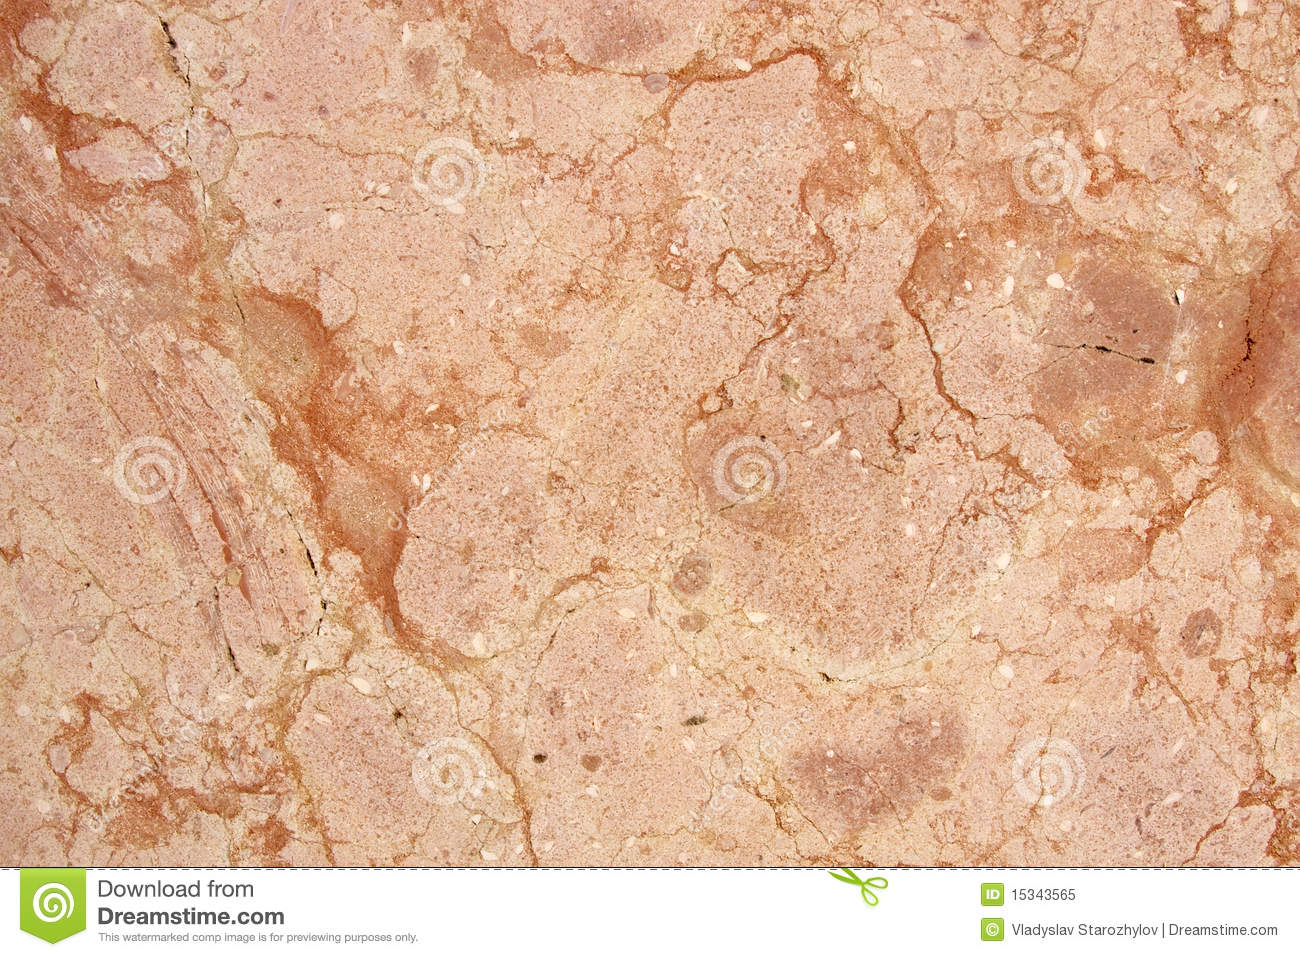 How to build a bathroom floor - Warm Colored Marble Texture Royalty Free Stock Photo